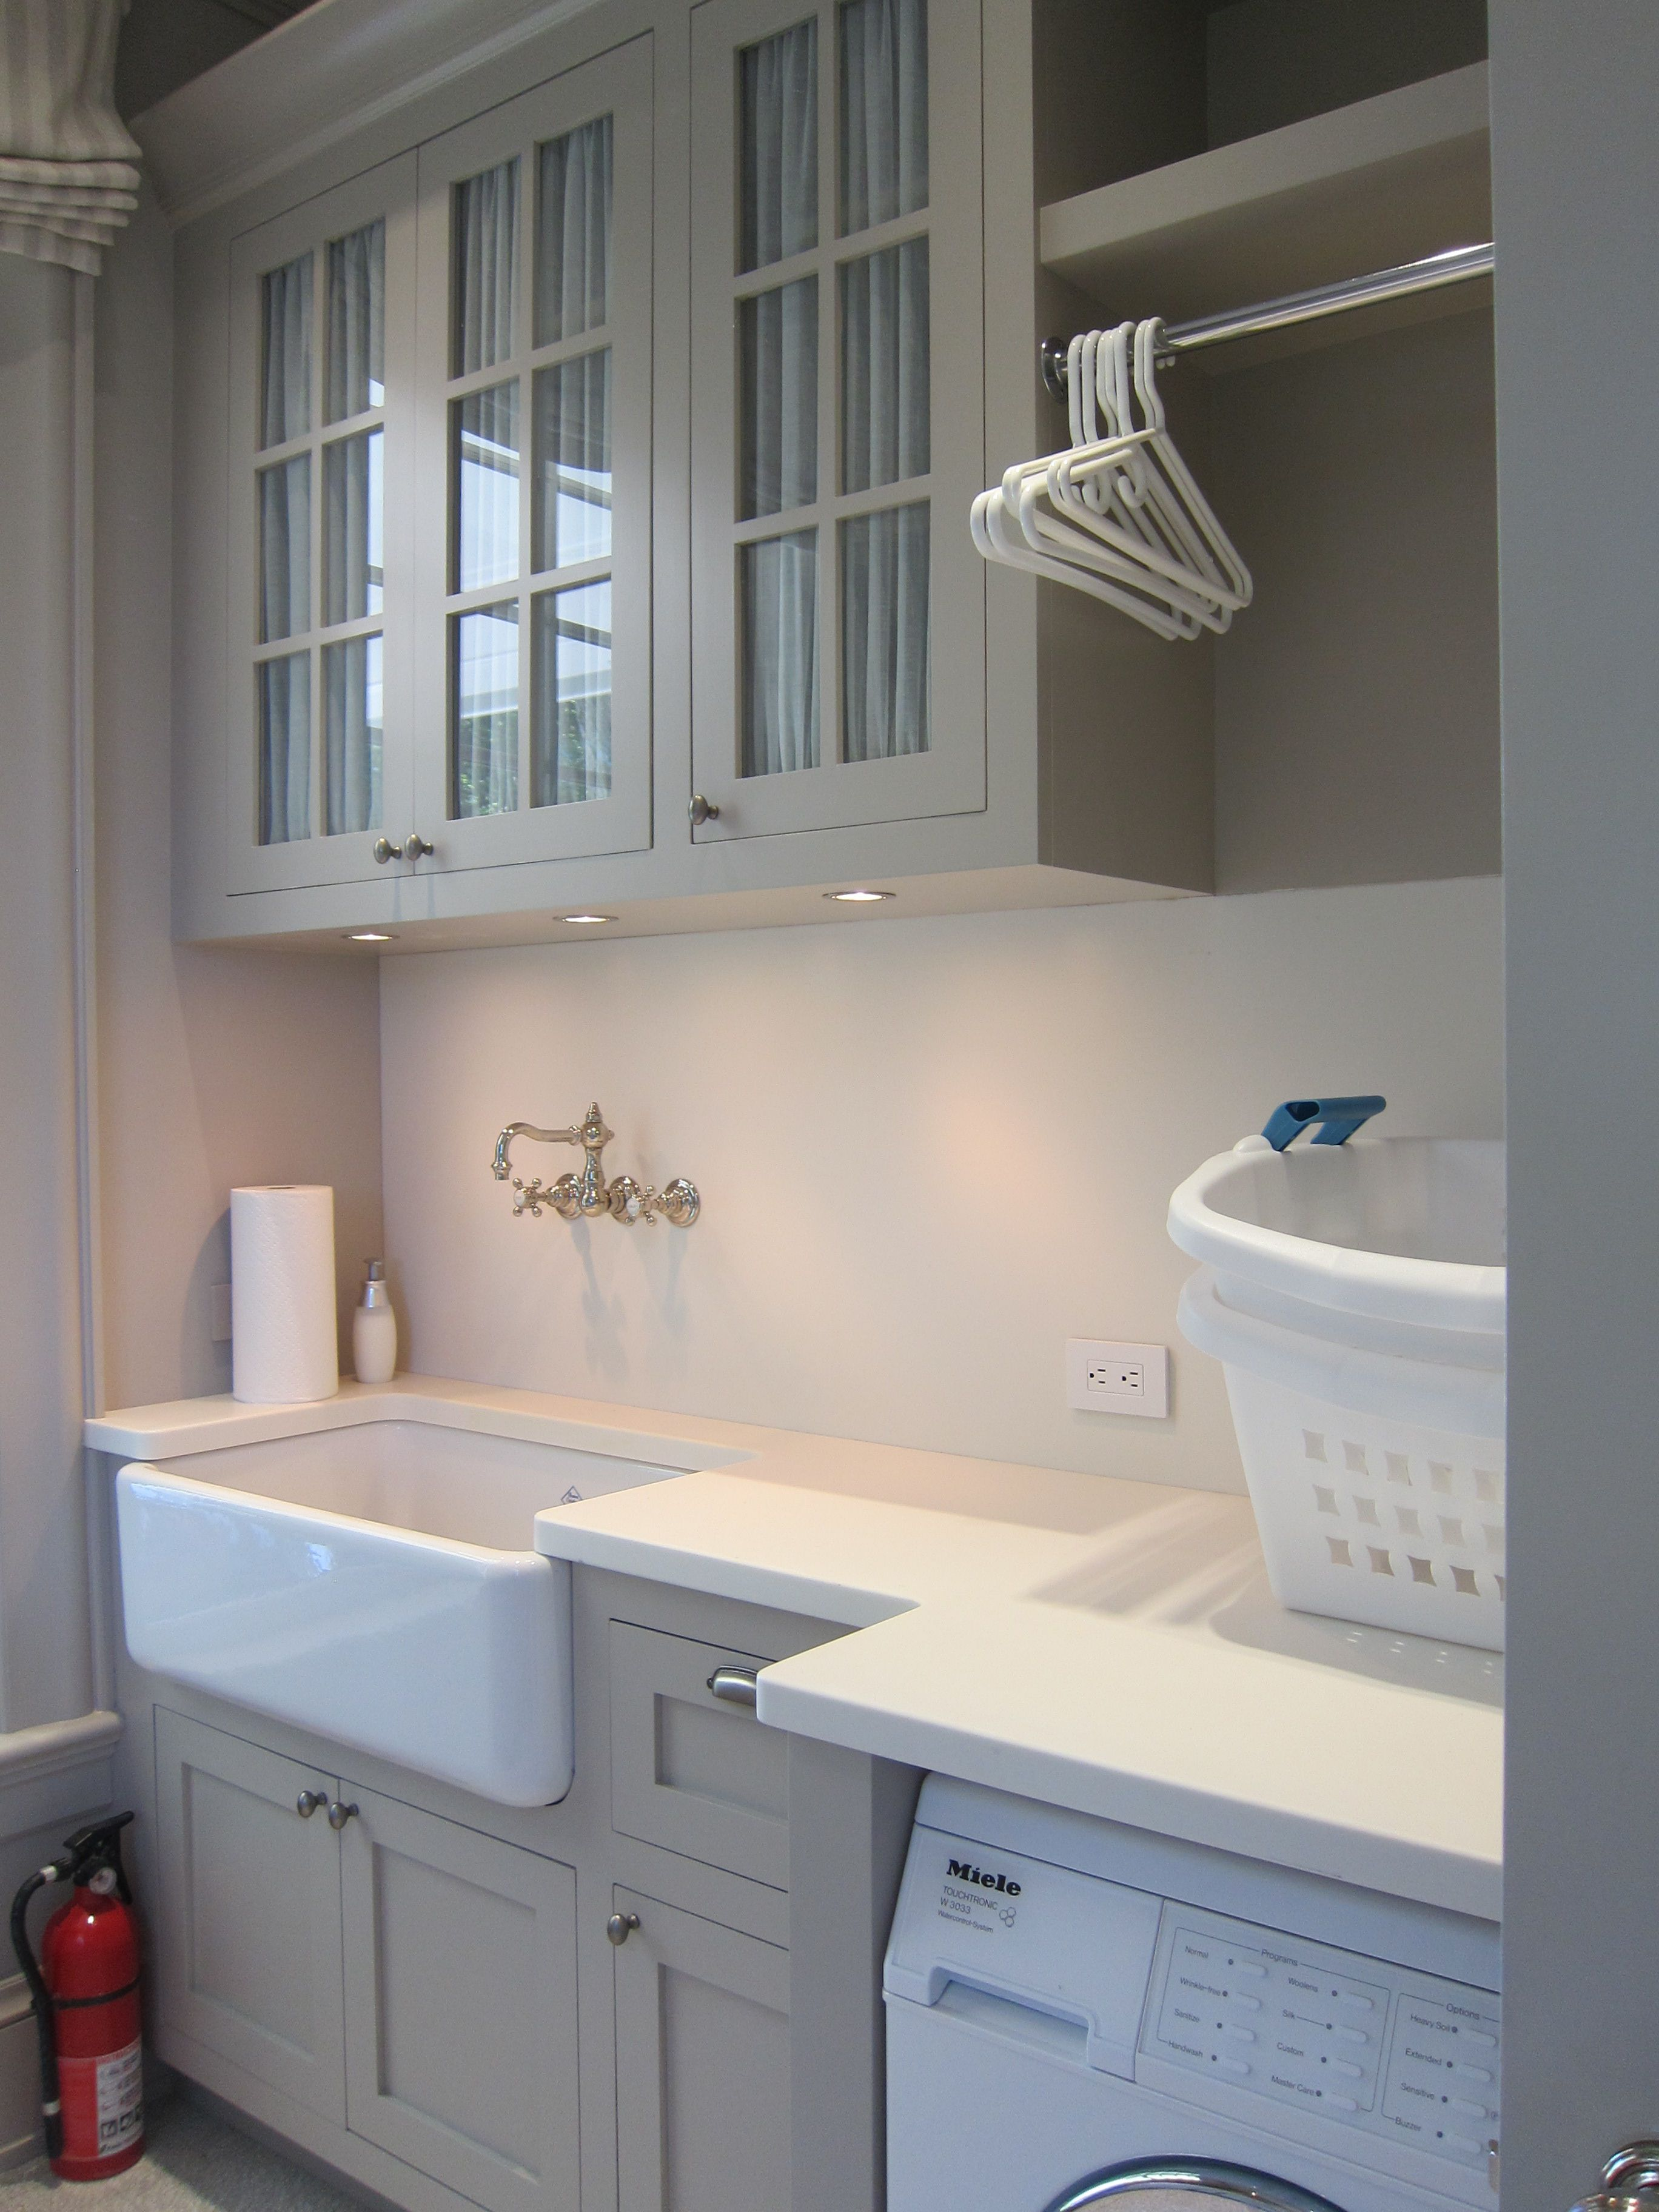 Add Some Wall Cupboards And A Hanging Rail For Drying Shirts And